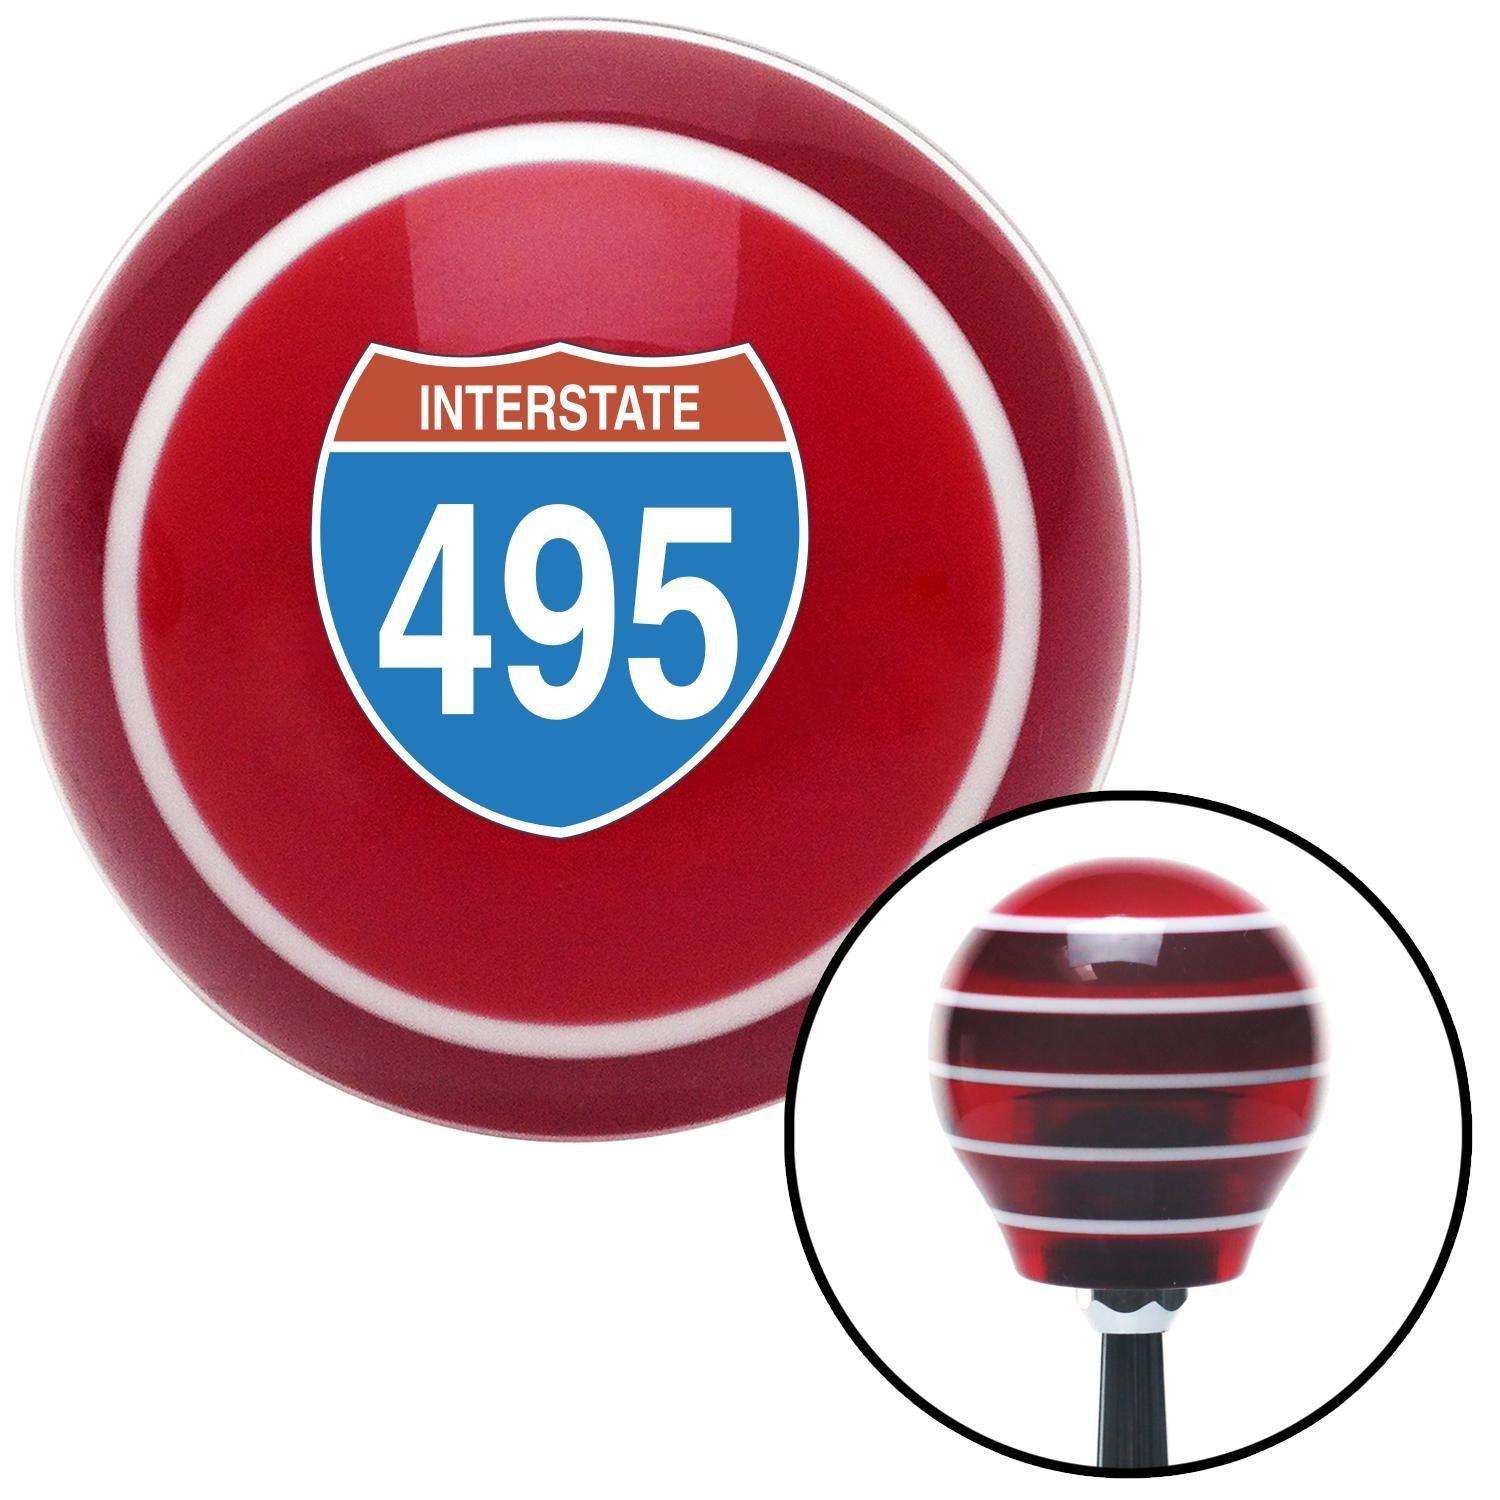 American Shifter 119332 Red Stripe Shift Knob with M16 x 1.5 Insert Interstate 495